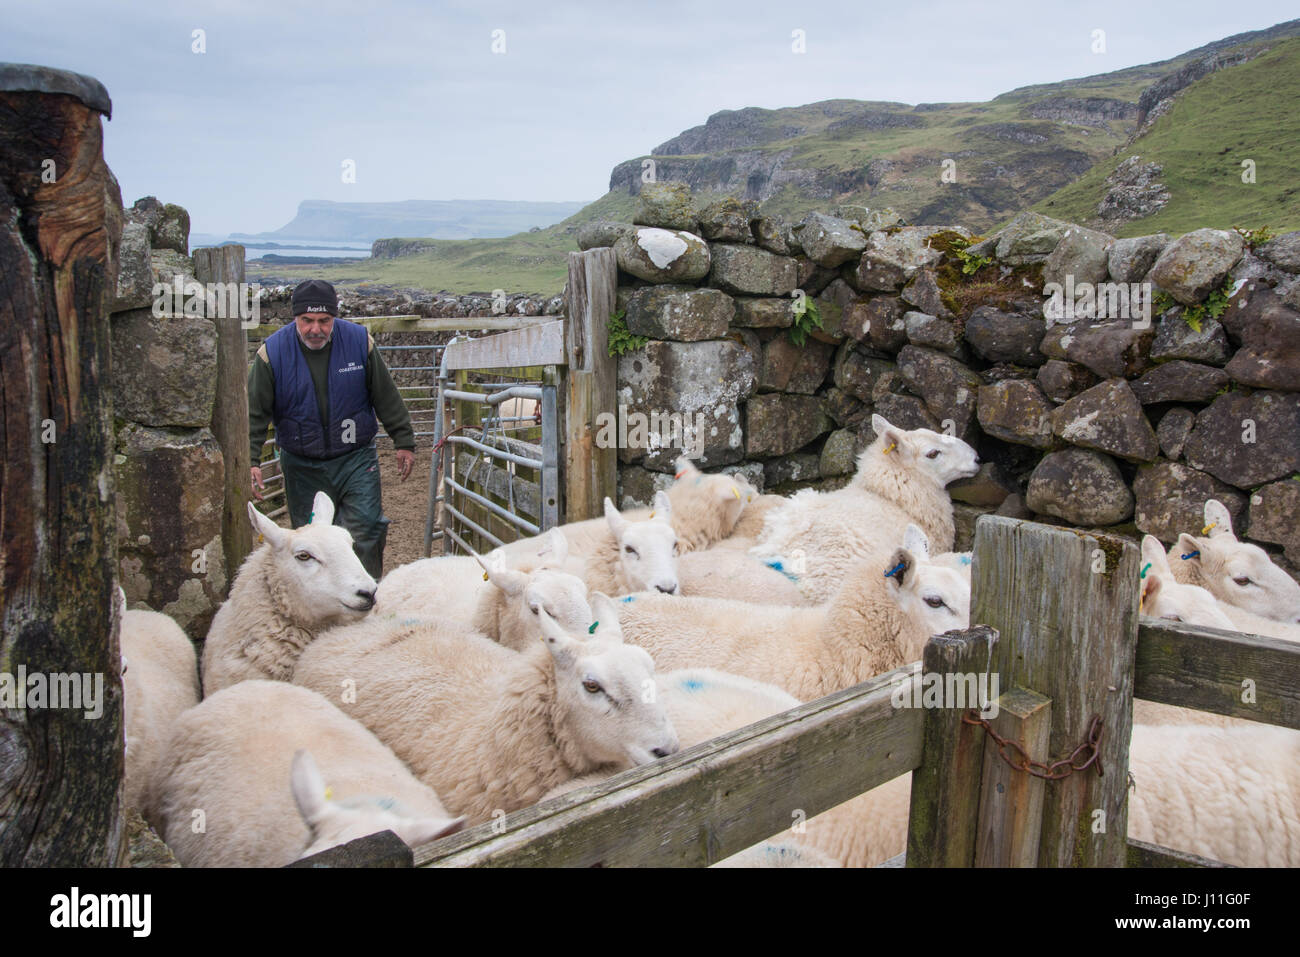 FarmerMurdo Jack checking his sheep for infection on the island of Canna, Inner Hebrides, Scotland - Stock Image